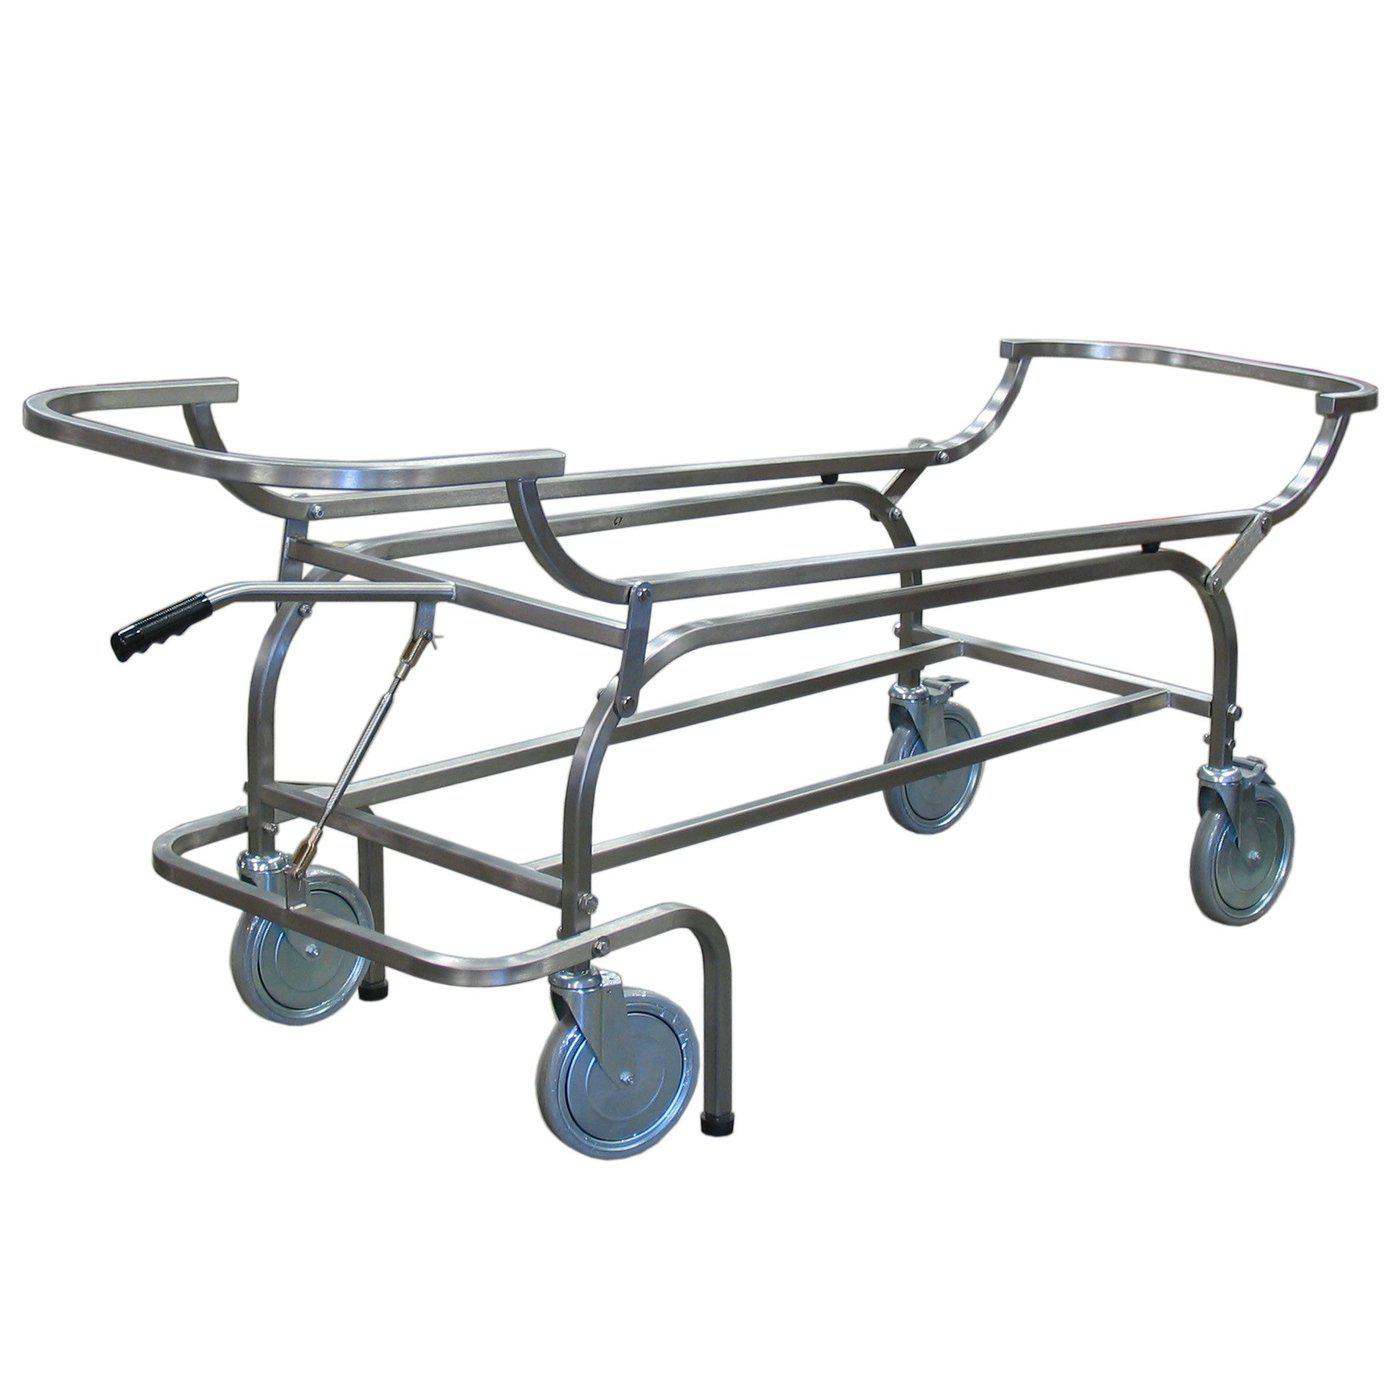 Carrier Chassis-Body Transporter-Mortech Manufacturing Company Inc. Quality Stainless Steel Autopsy, Morgue, Funeral Home, Necropsy, Veterinary / Anatomy, Dissection Equipment and Accessories